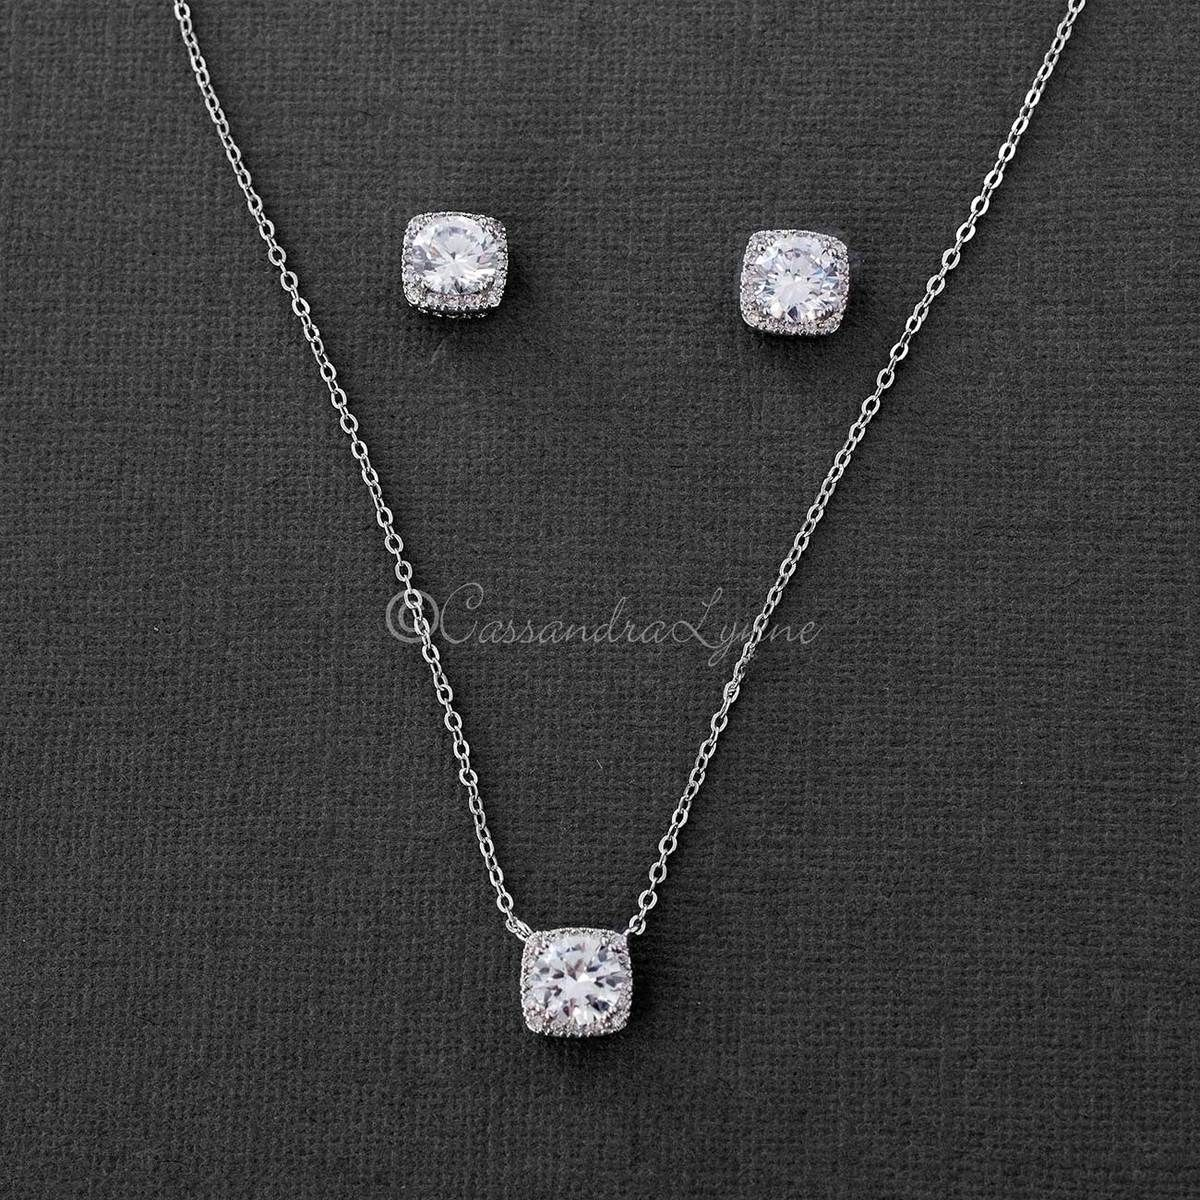 Gold CZ Butterly Necklace\u2022 butterfly connector\u2022 cubic zirconia\u2022 necklace for women\u2022 stackable\u2022 layering jewelry\u2022 gift for her\u2022